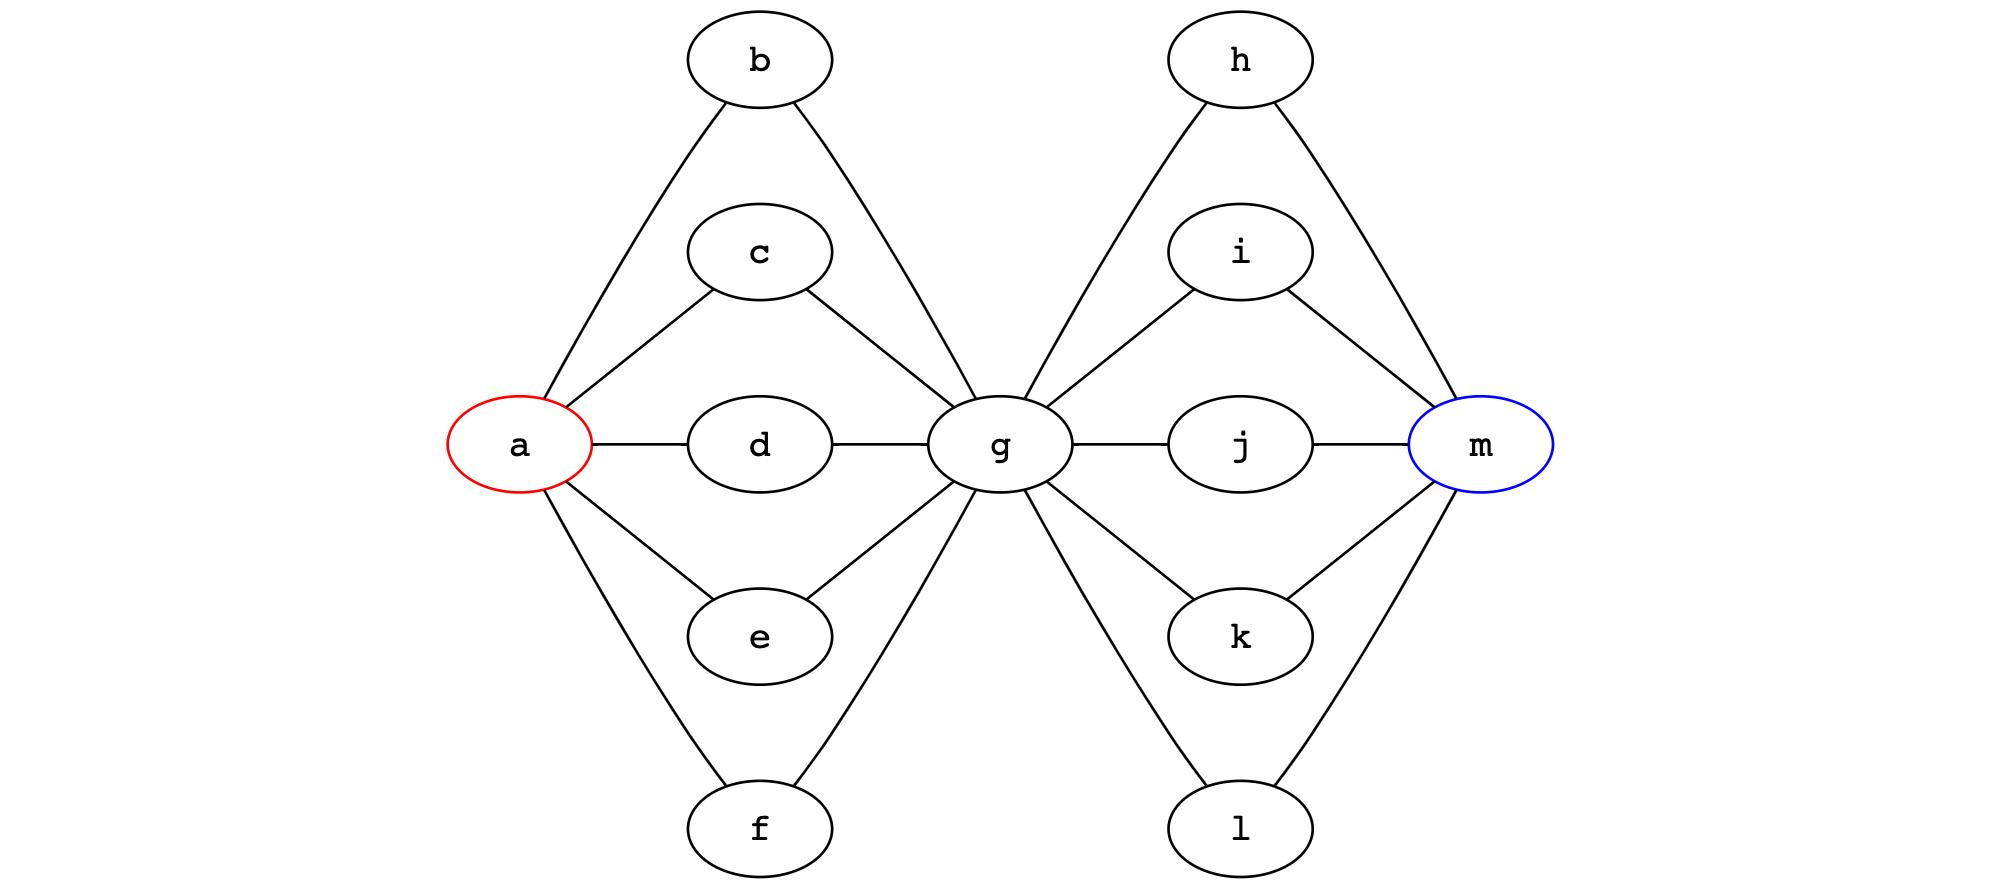 High-merge commit graph